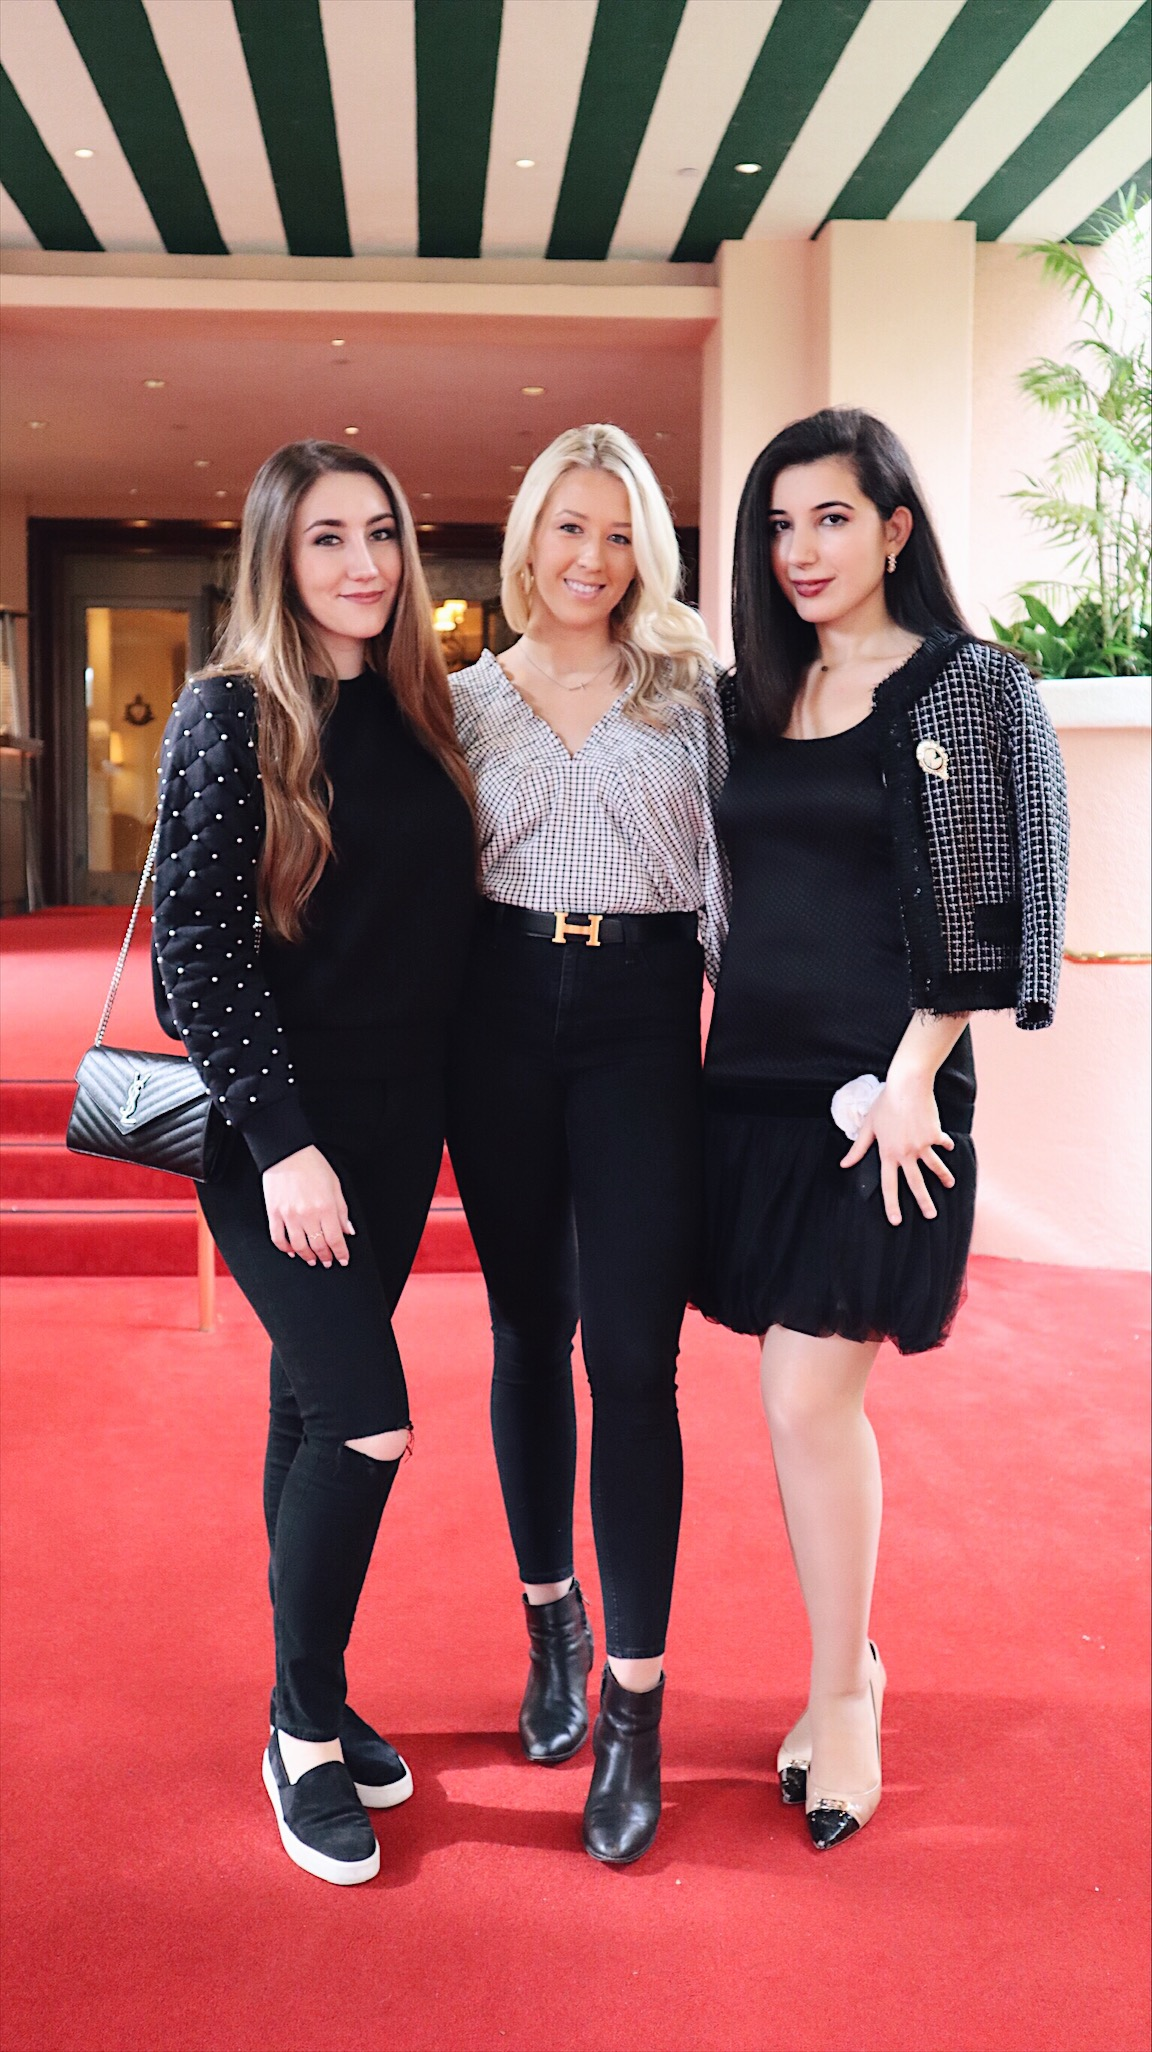 Beverly Hills Hotel, brunch, brunch outfit, lookbook, Chanel, vintage, fashion blogger, style blogger, outfit of the day, ootd, lookbook, Coach shoes, little black dress, LBD, pink and black, ladies who lunch